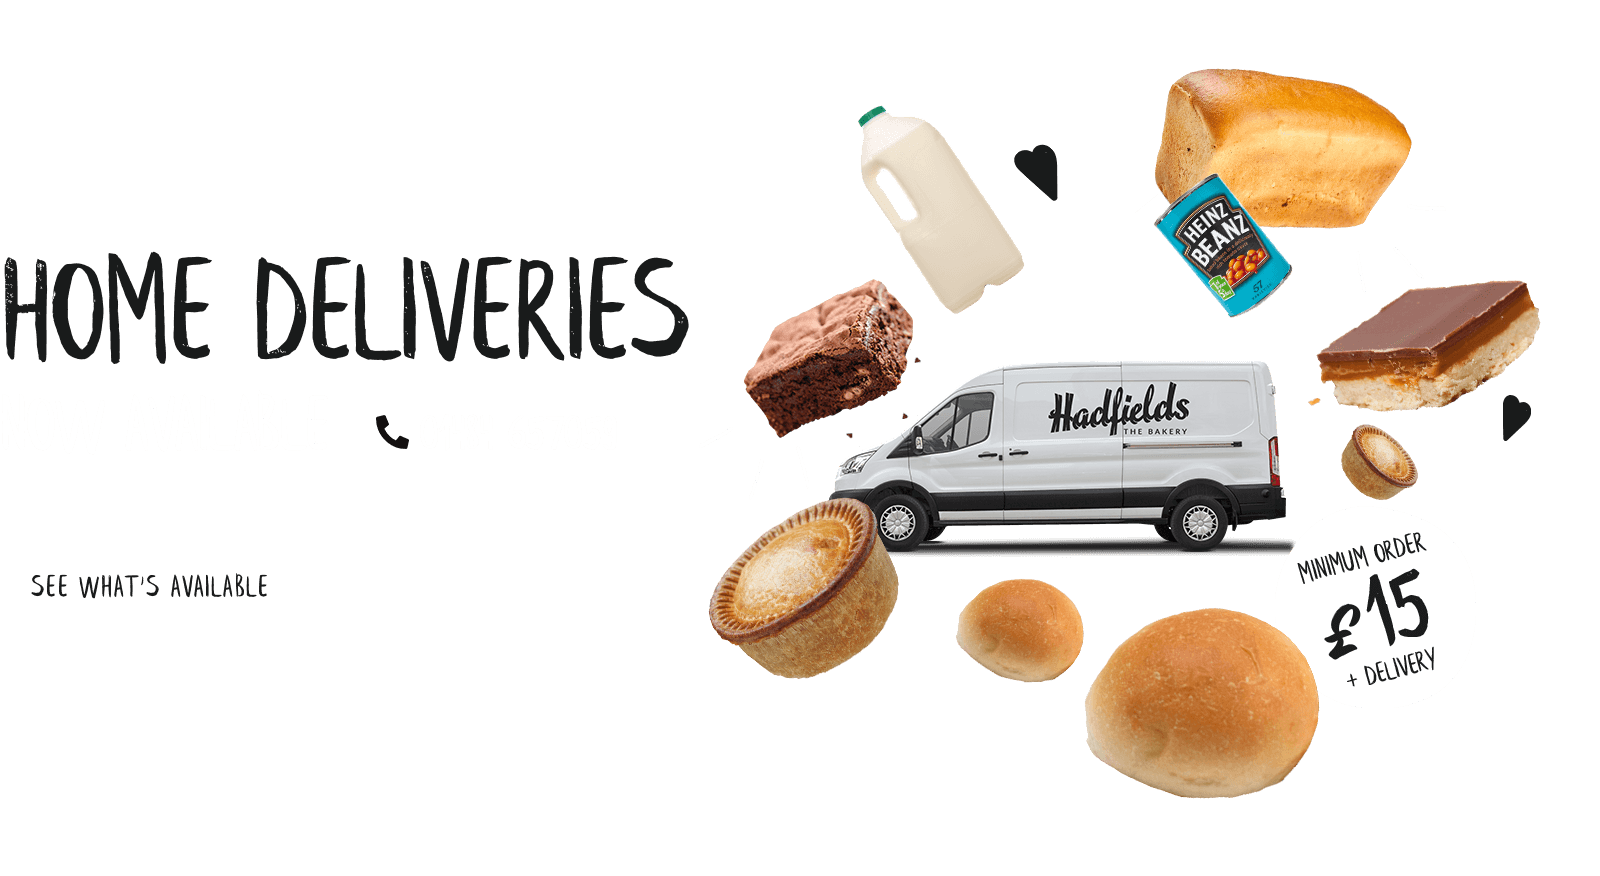 Hadfields Bakery Home Delivery Service